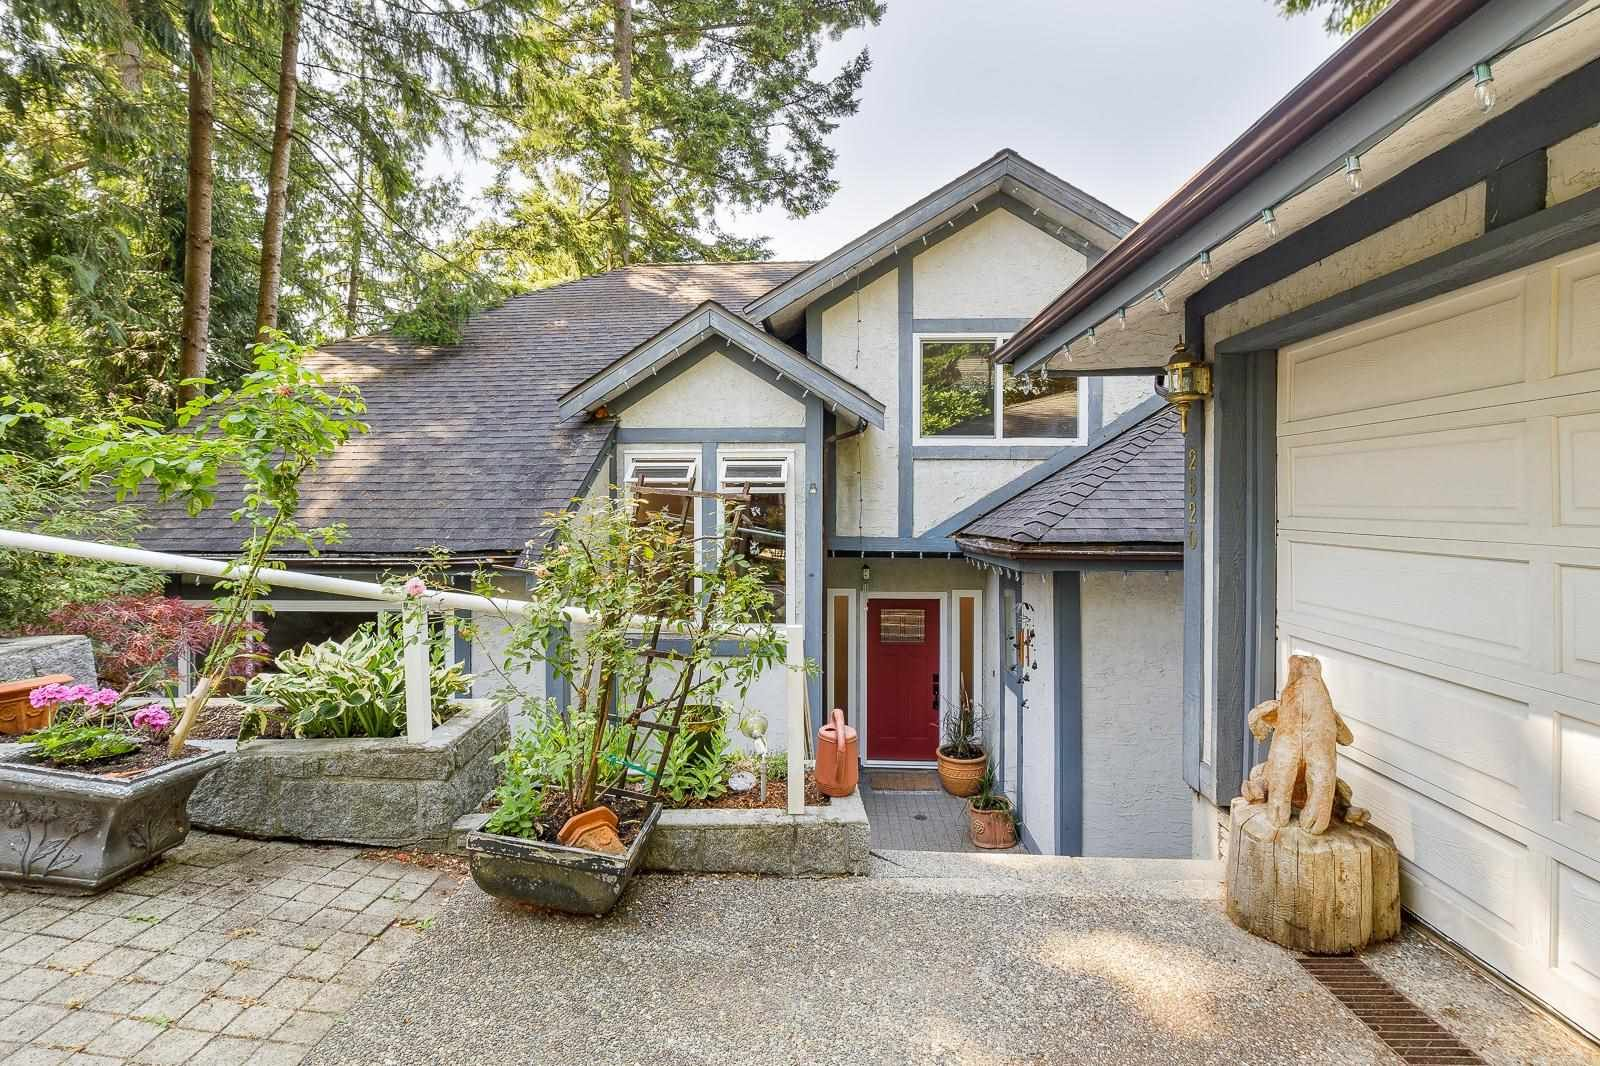 """Main Photo: 2620 CHARTER HILL Place in Coquitlam: Upper Eagle Ridge House for sale in """"UPPER EAGLERIDGE"""" : MLS®# R2600063"""